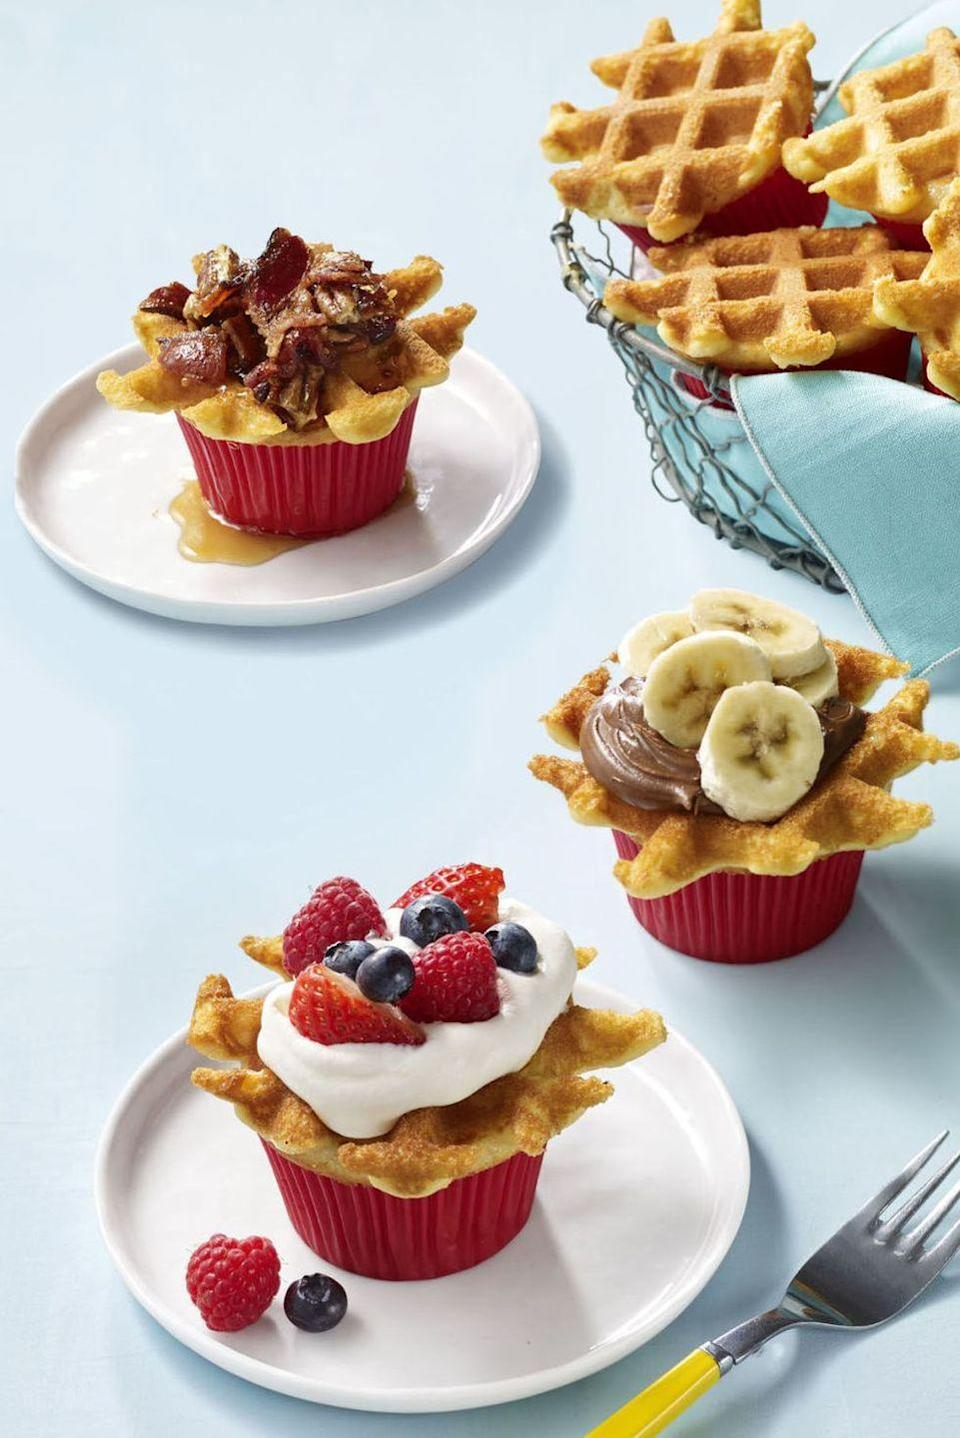 "<p>If you're looking for the perfect way to start off your 4th (and a great excuse to eat cupcakes for <a href=""https://www.goodhousekeeping.com/food-recipes/easy/g871/quick-breakfasts/"" rel=""nofollow noopener"" target=""_blank"" data-ylk=""slk:breakfast"" class=""link rapid-noclick-resp"">breakfast</a>), look no further than these delicious ""wafflecakes"" topped with strawberries, blueberries, and whatever else your heart desires.<br></p><p><em><a href=""https://www.womansday.com/food-recipes/food-drinks/recipes/a57925/wafflecakes-recipe/"" rel=""nofollow noopener"" target=""_blank"" data-ylk=""slk:Get the recipe from Woman's Day »"" class=""link rapid-noclick-resp"">Get the recipe from Woman's Day »</a></em></p>"